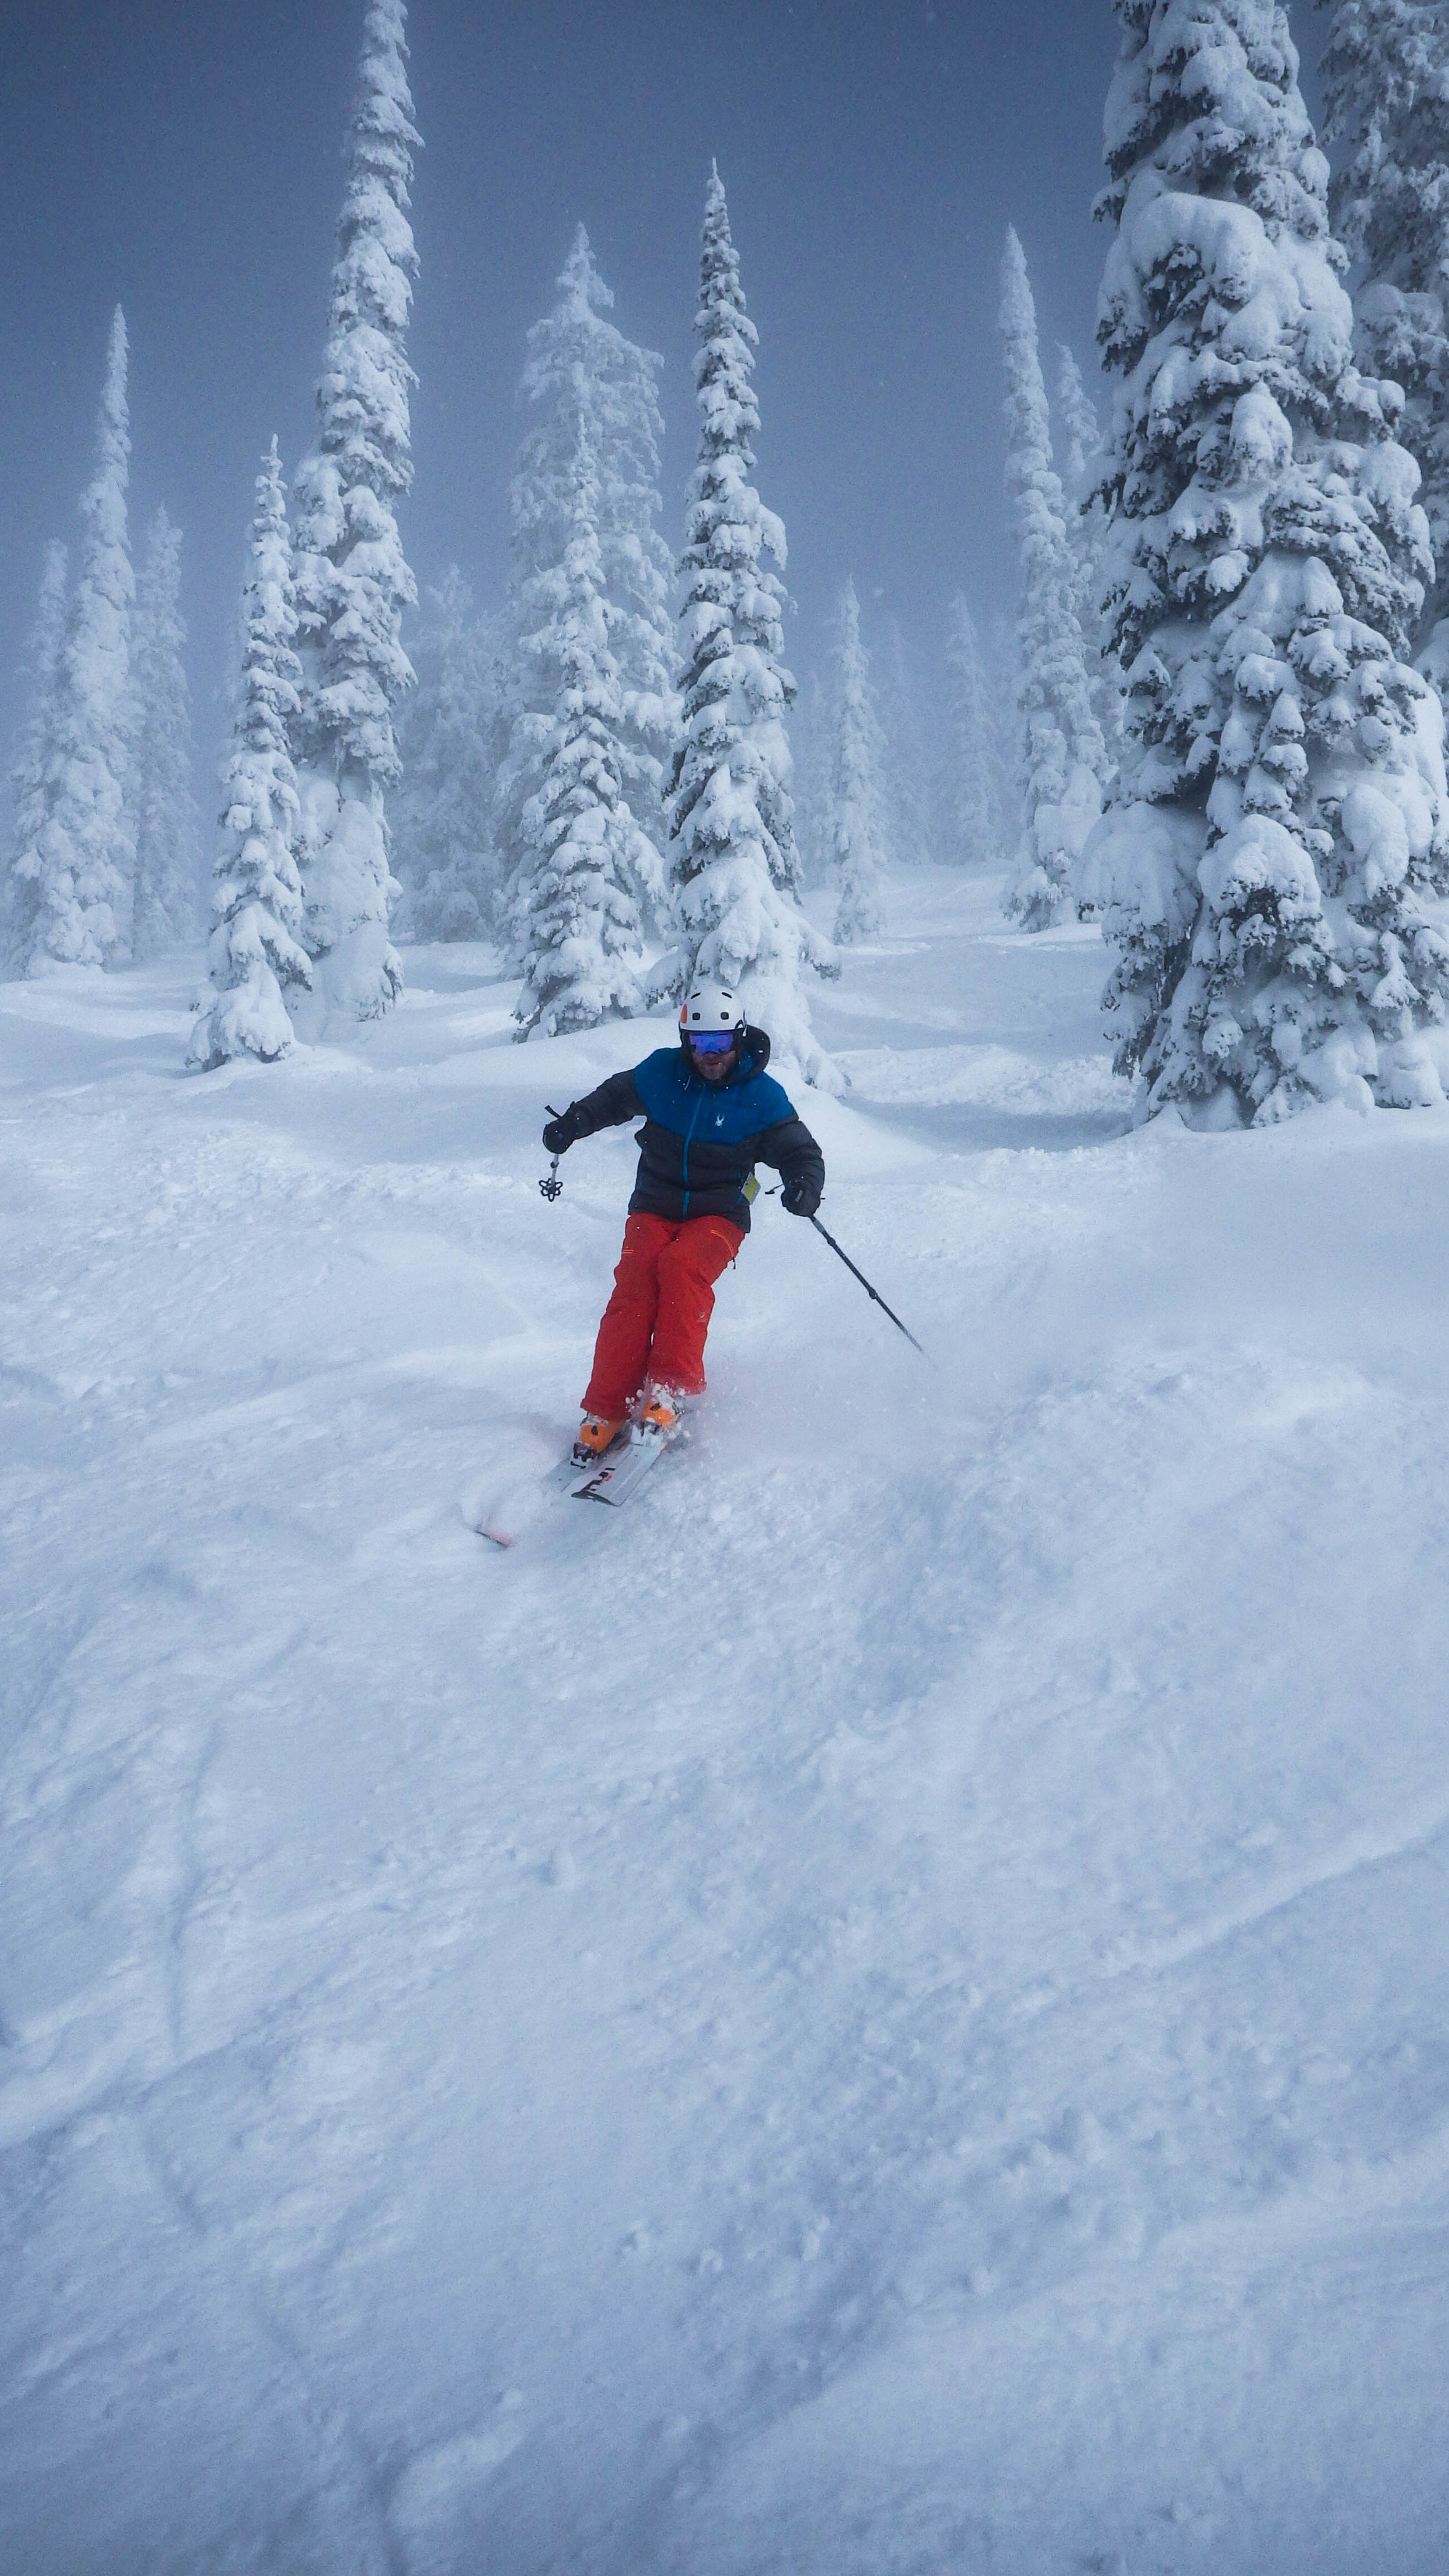 Tree skiing in Whitewater